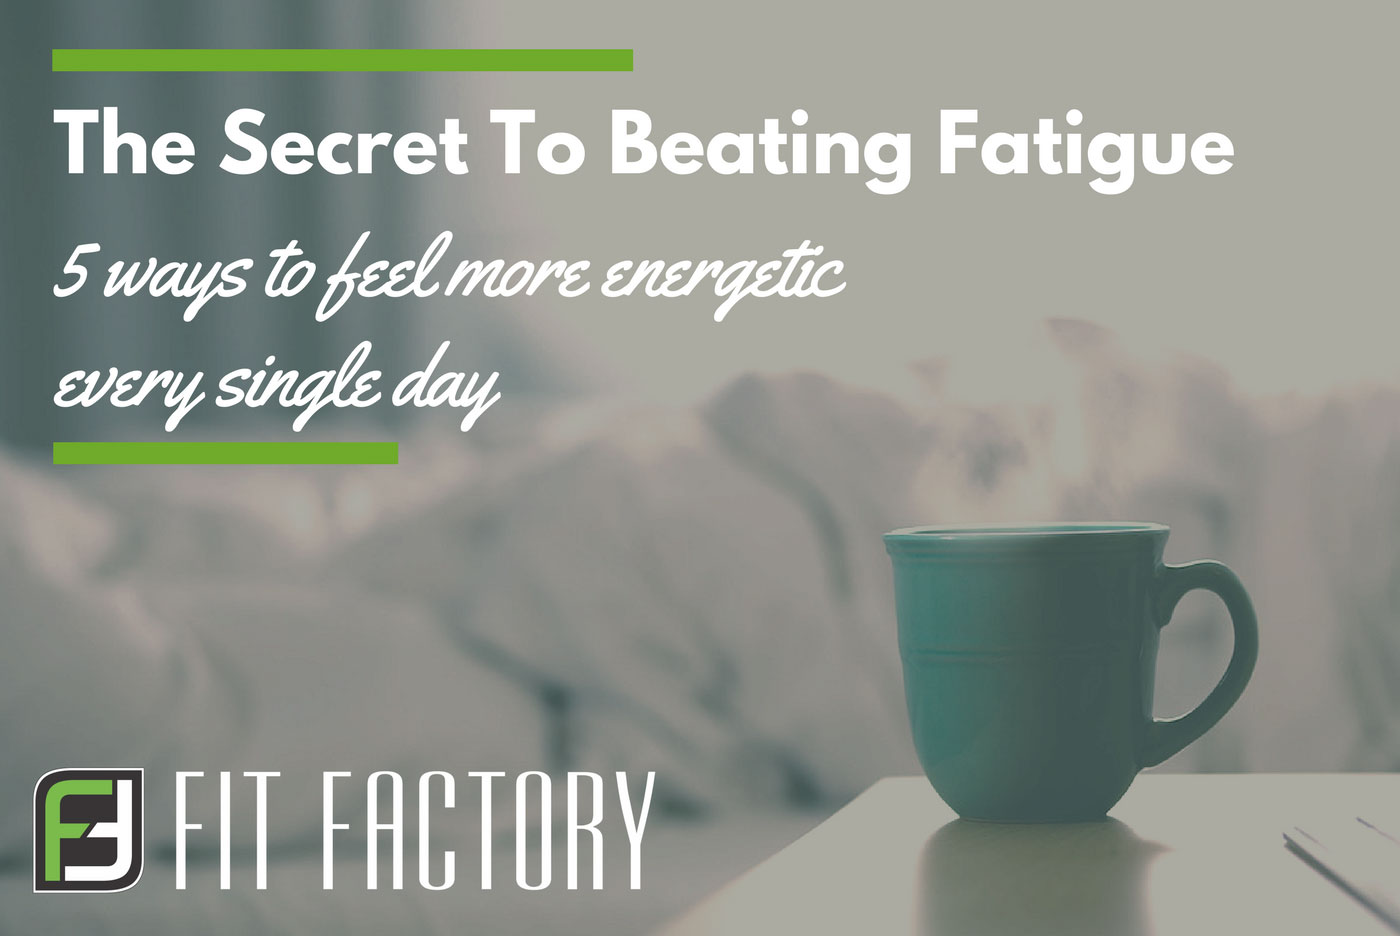 The Secret To Beating Fatigue: 5 Ways To Feel More Energetic Every Day